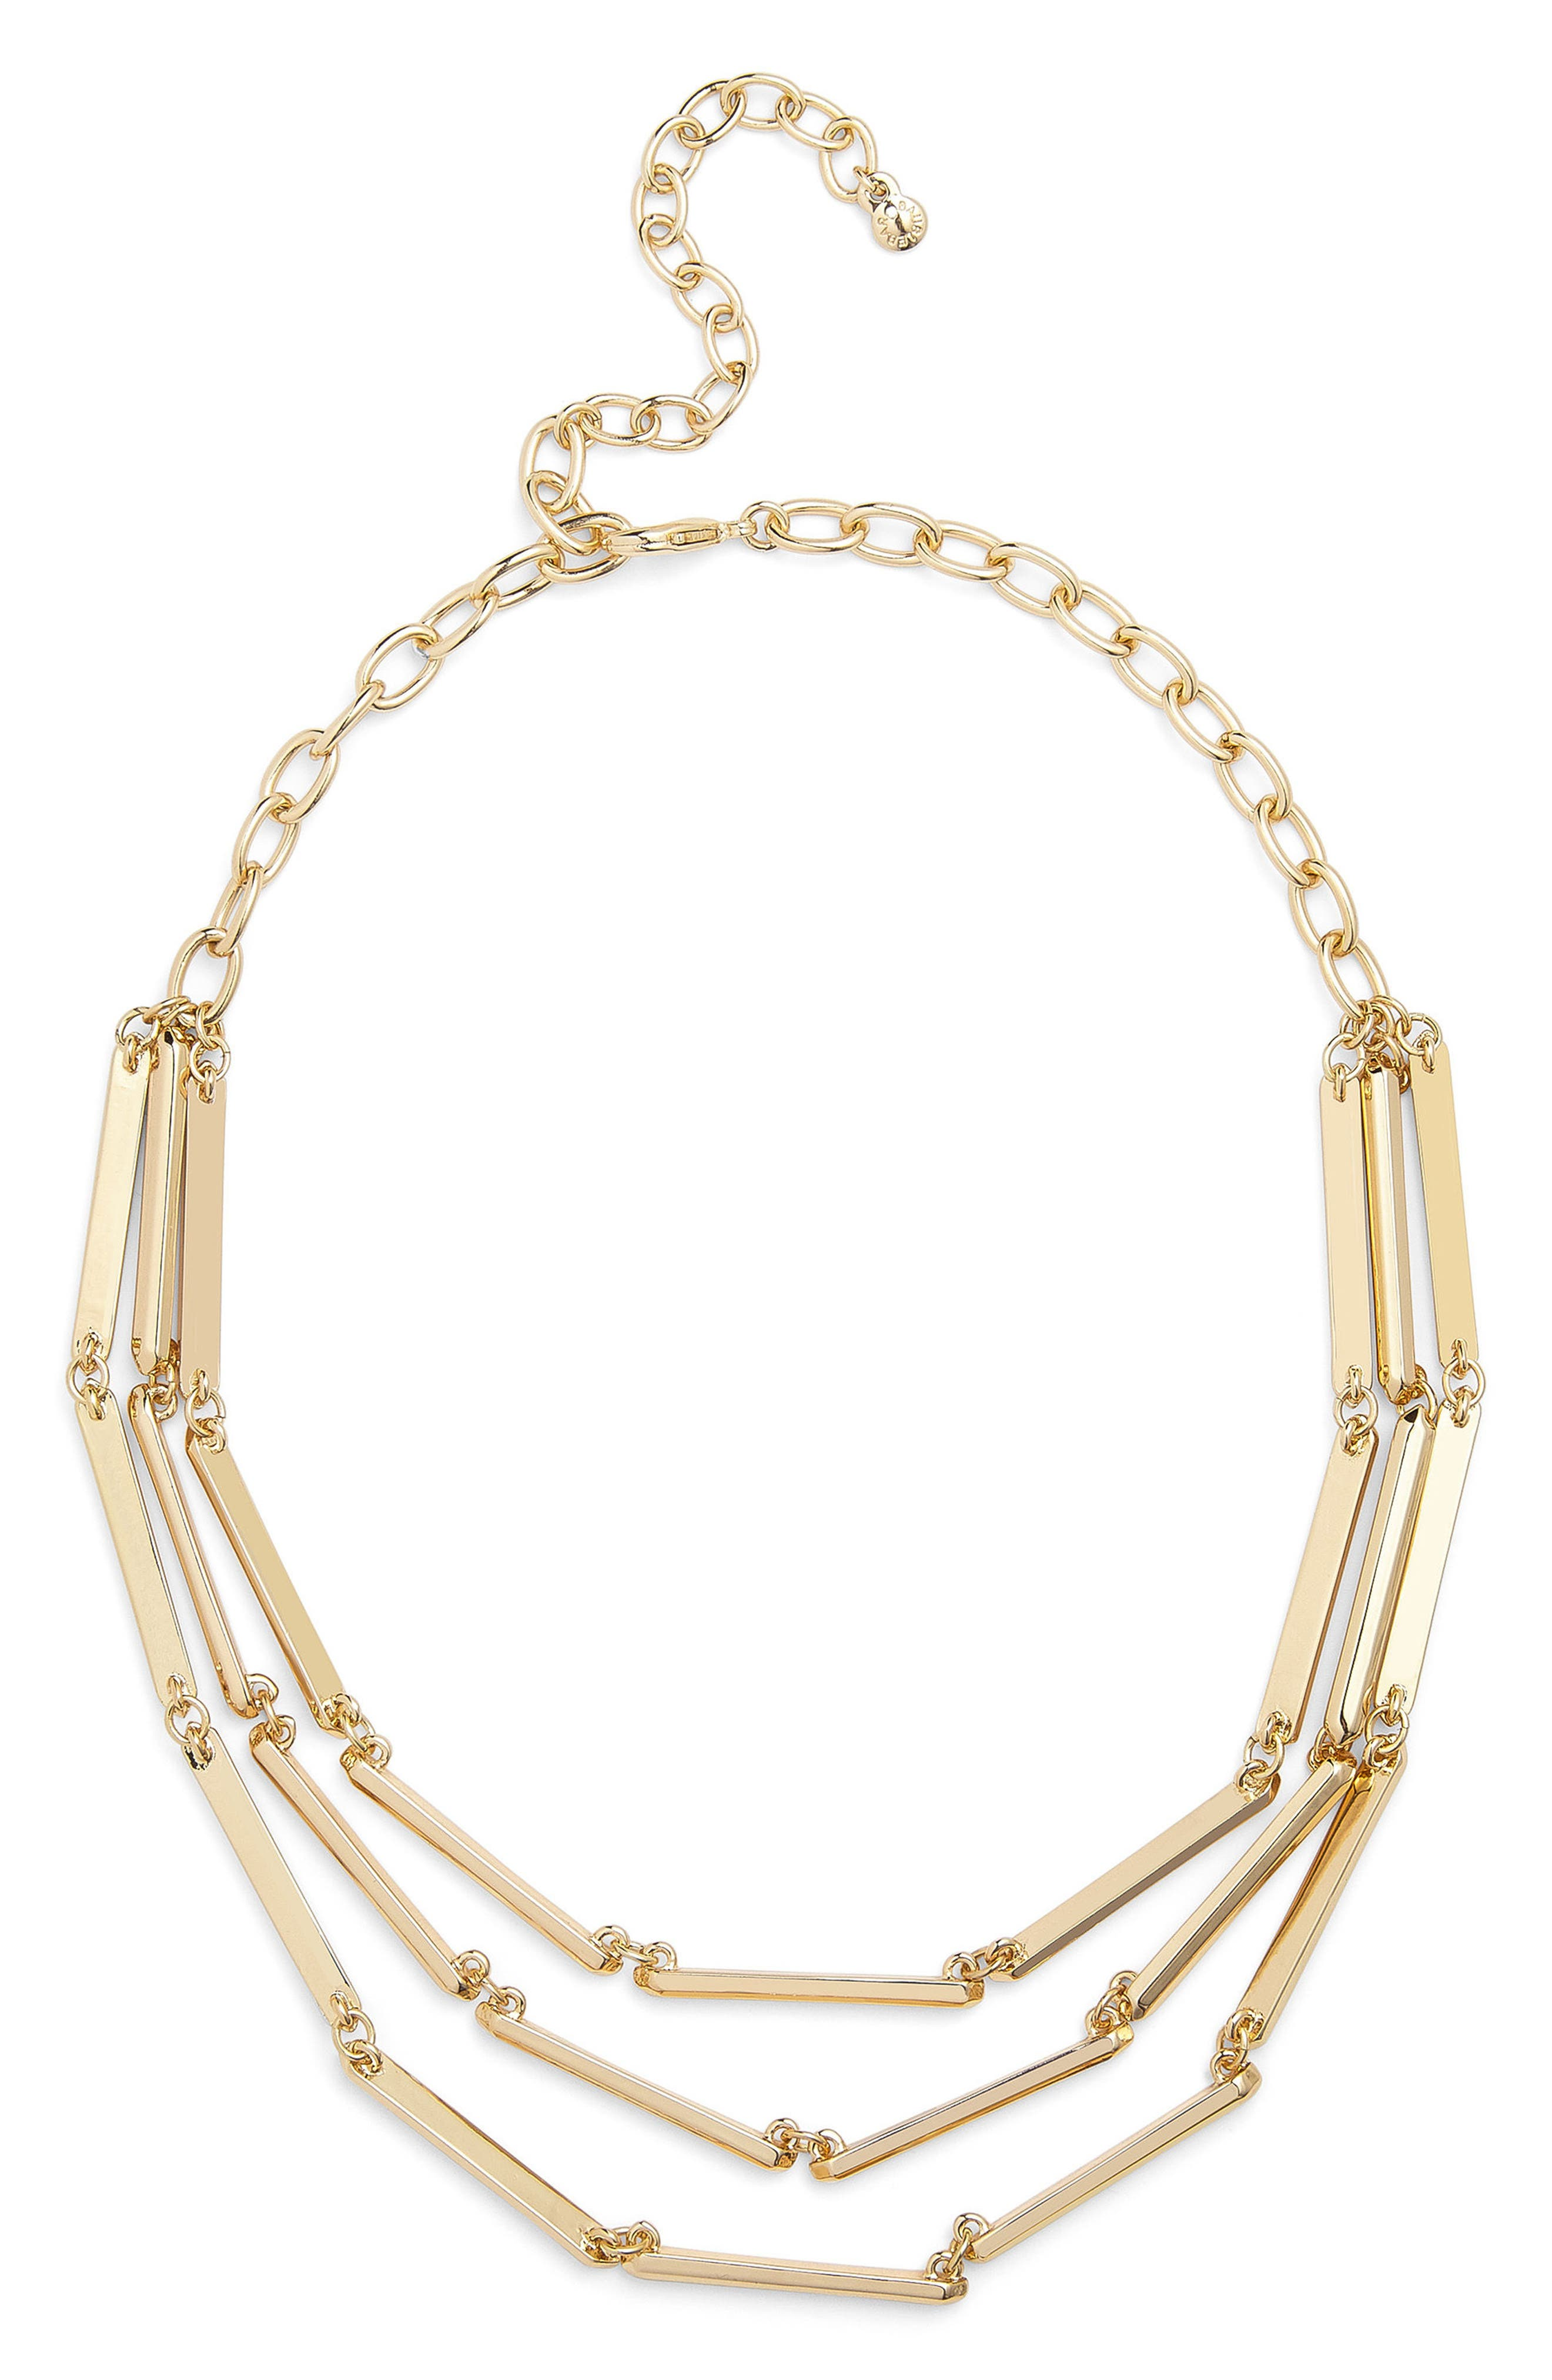 Payla Multistrand Necklace,                         Main,                         color, Gold